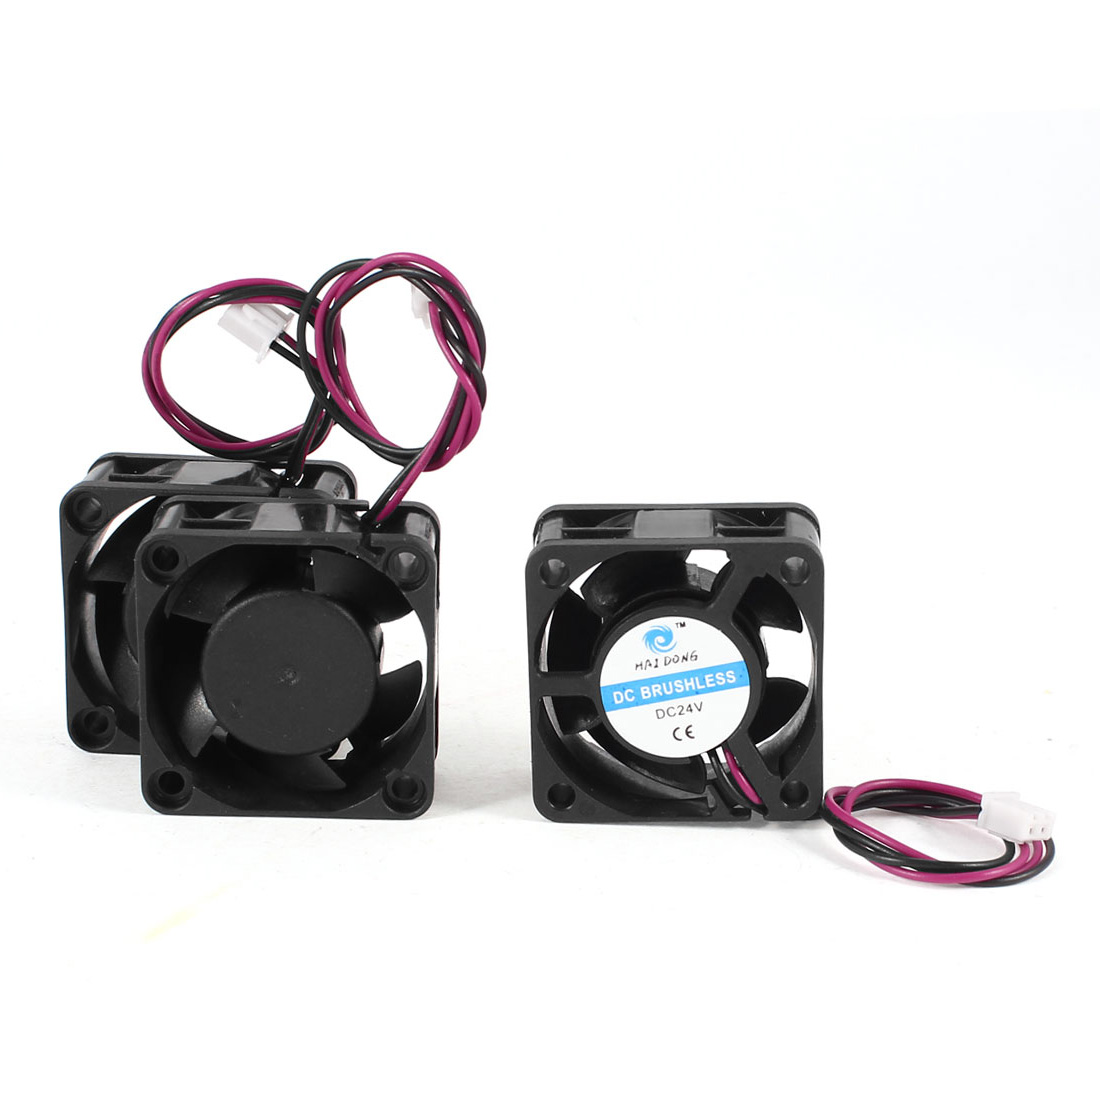 3 Pcs DC 24V 40mmx20mm Plastic 5 Flabellums Cooling Fan for Computer Case CPU Cooler